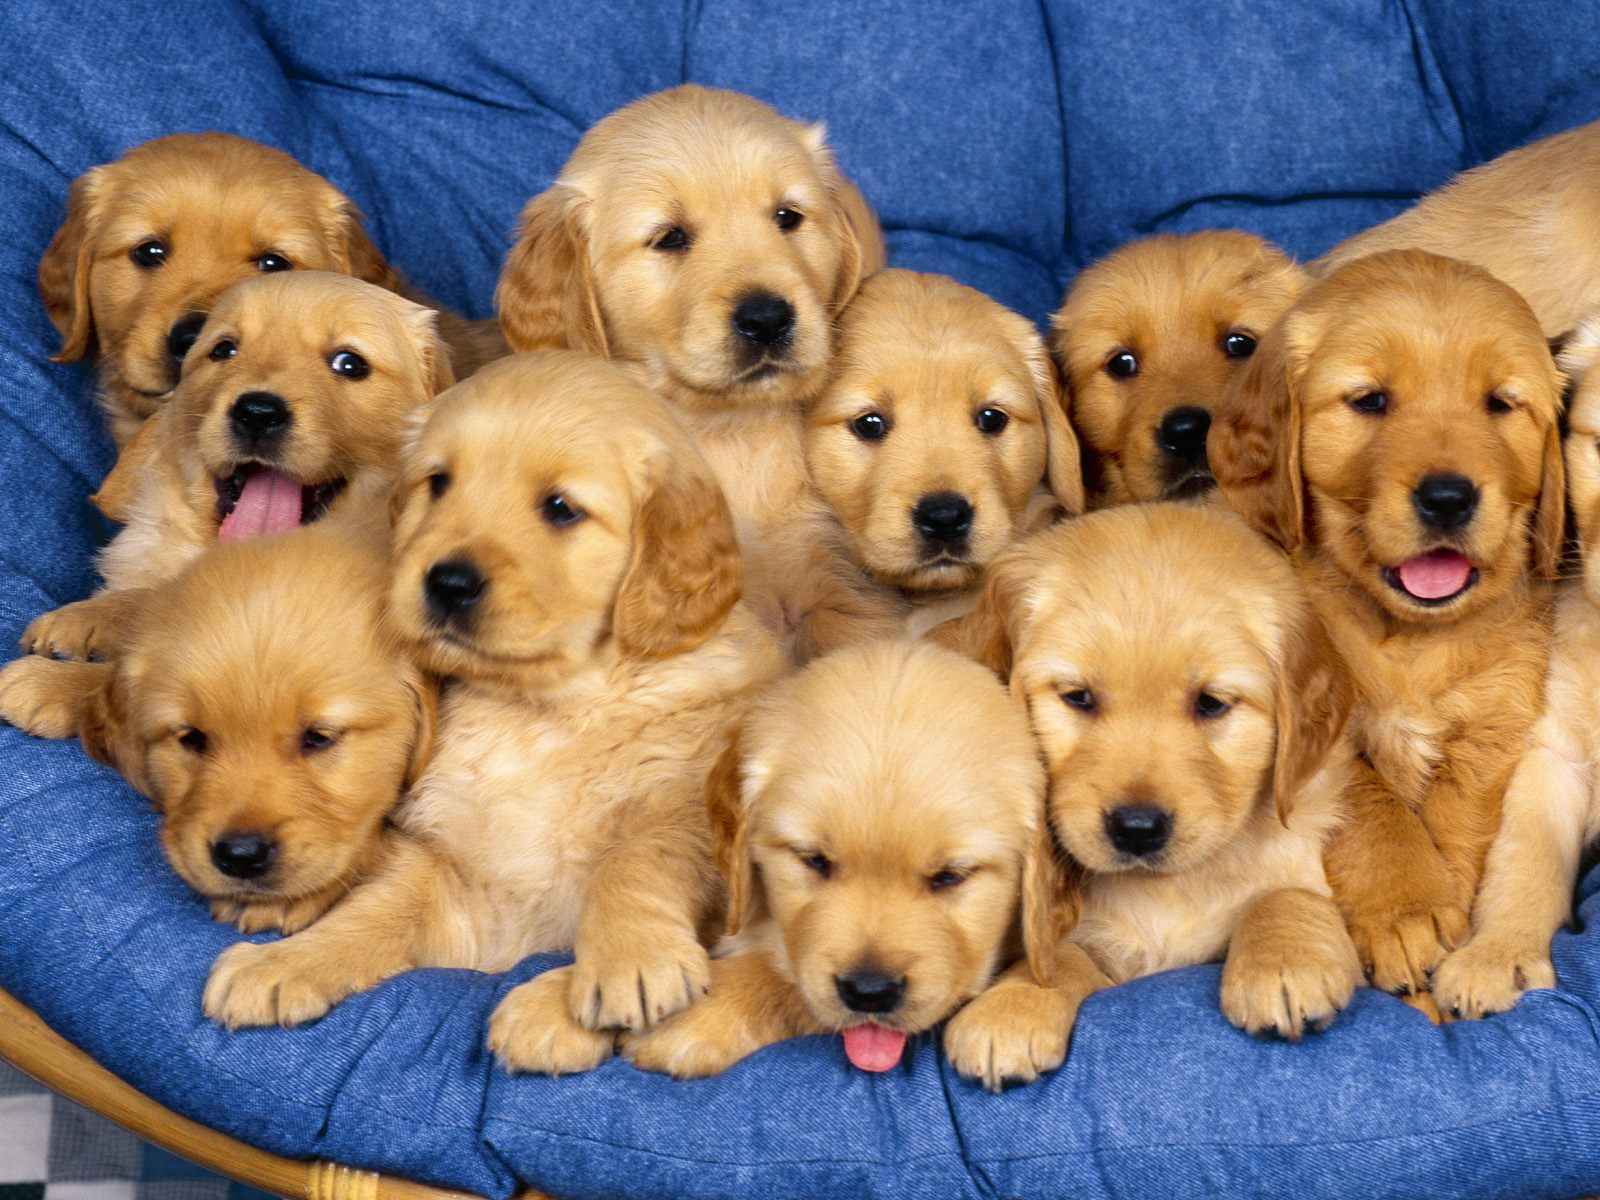 Puppy Dogs Hd Desktop Images Wallpapers  Hasnat wallpapers, Free